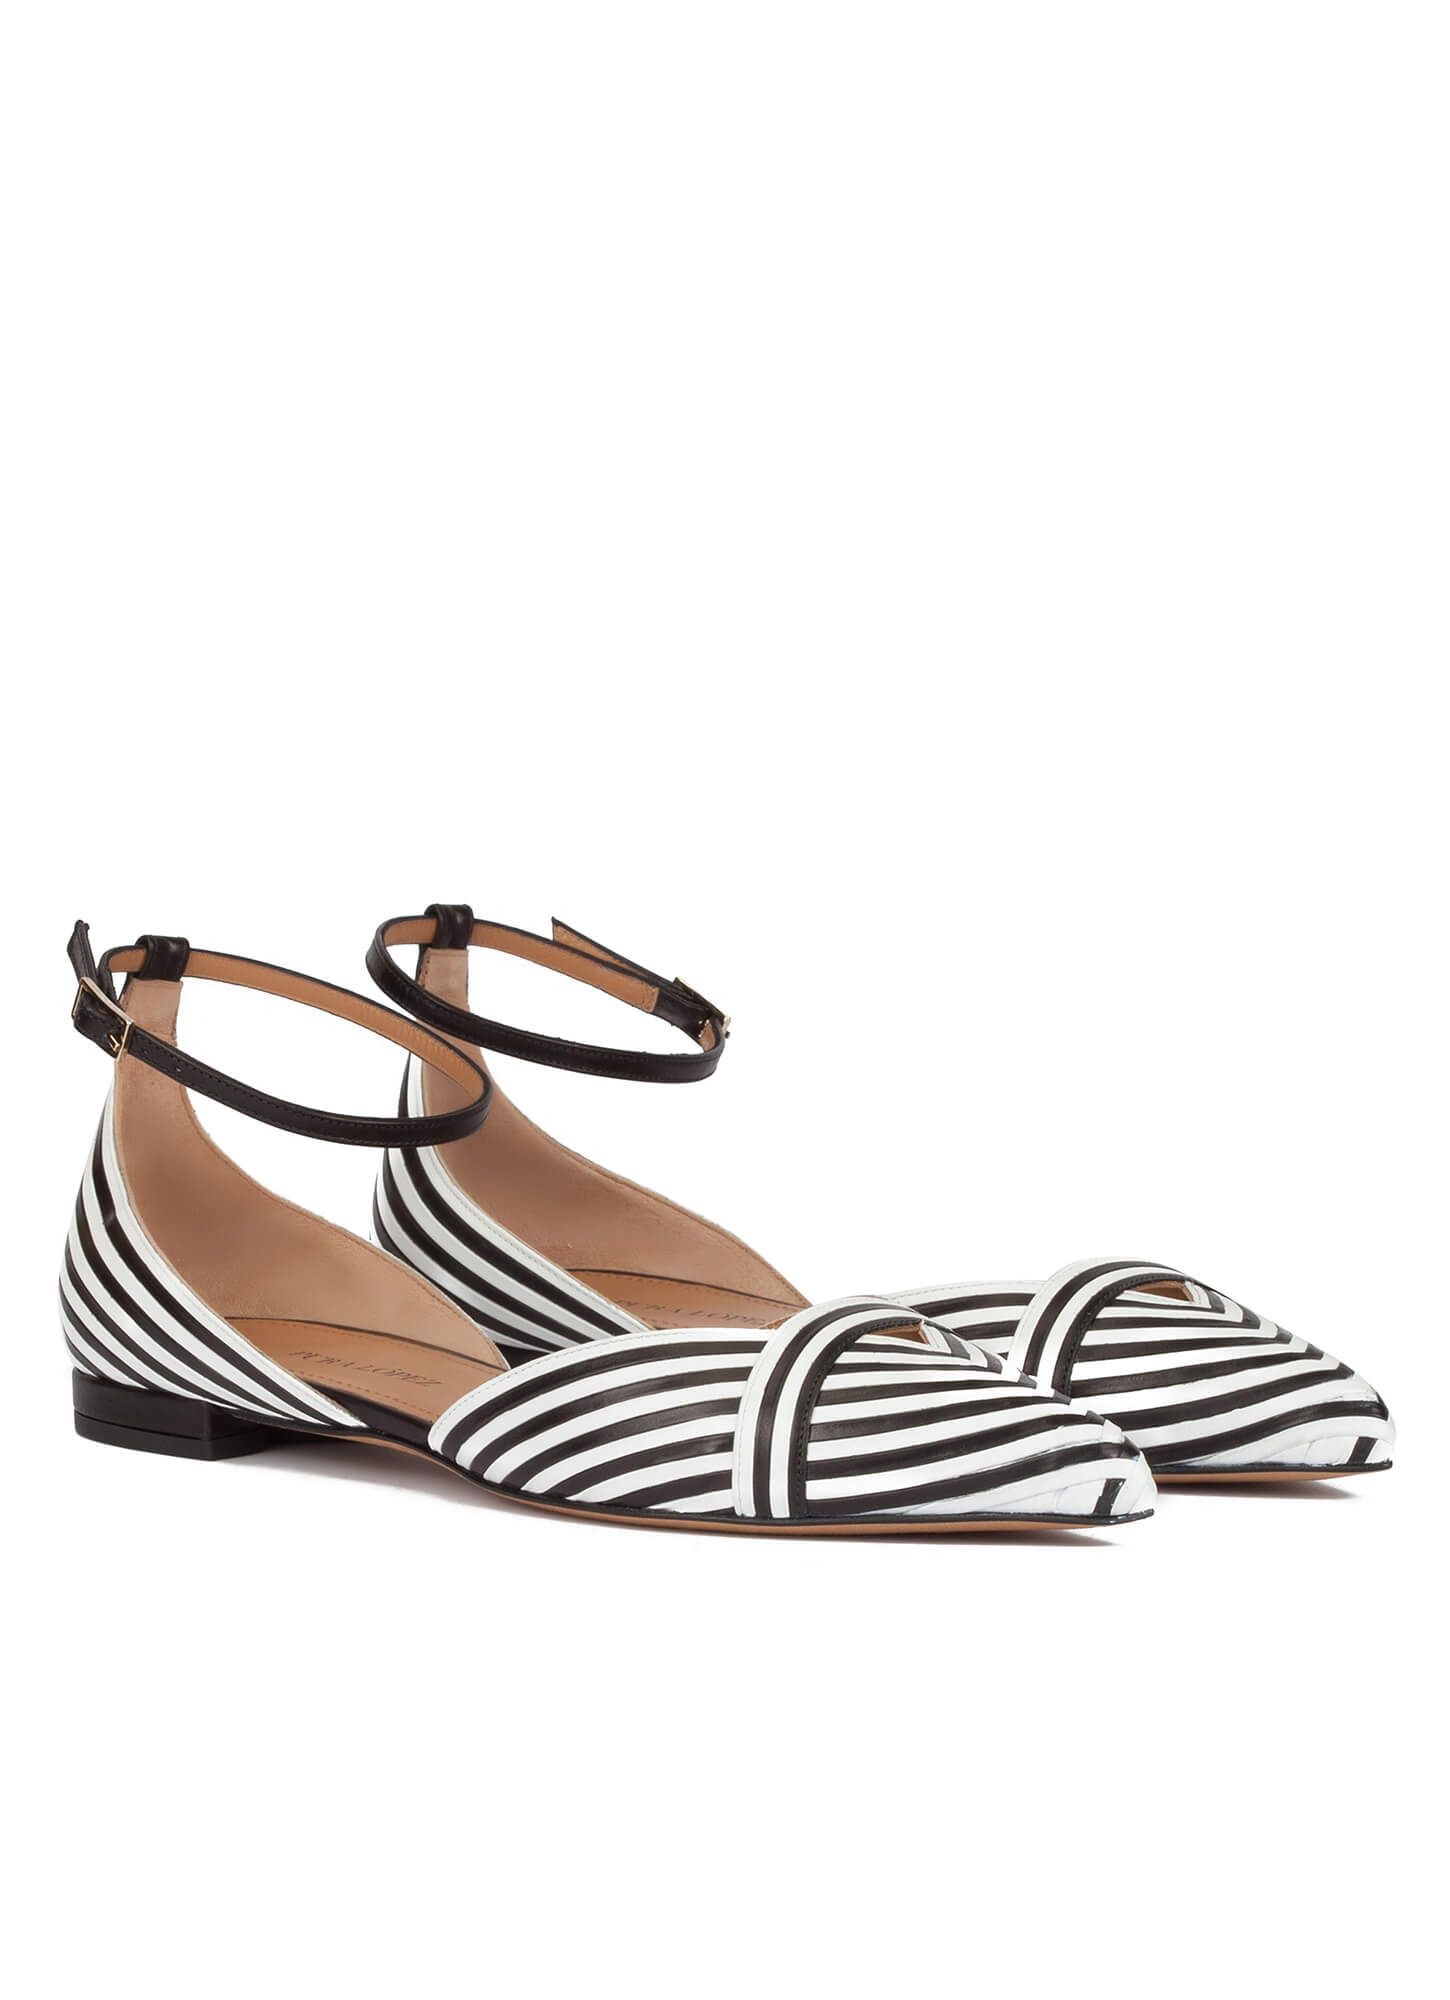 bd4c7626c18 Opaline Pura López. Ankle strap point-toe flats in black and white leather  ...